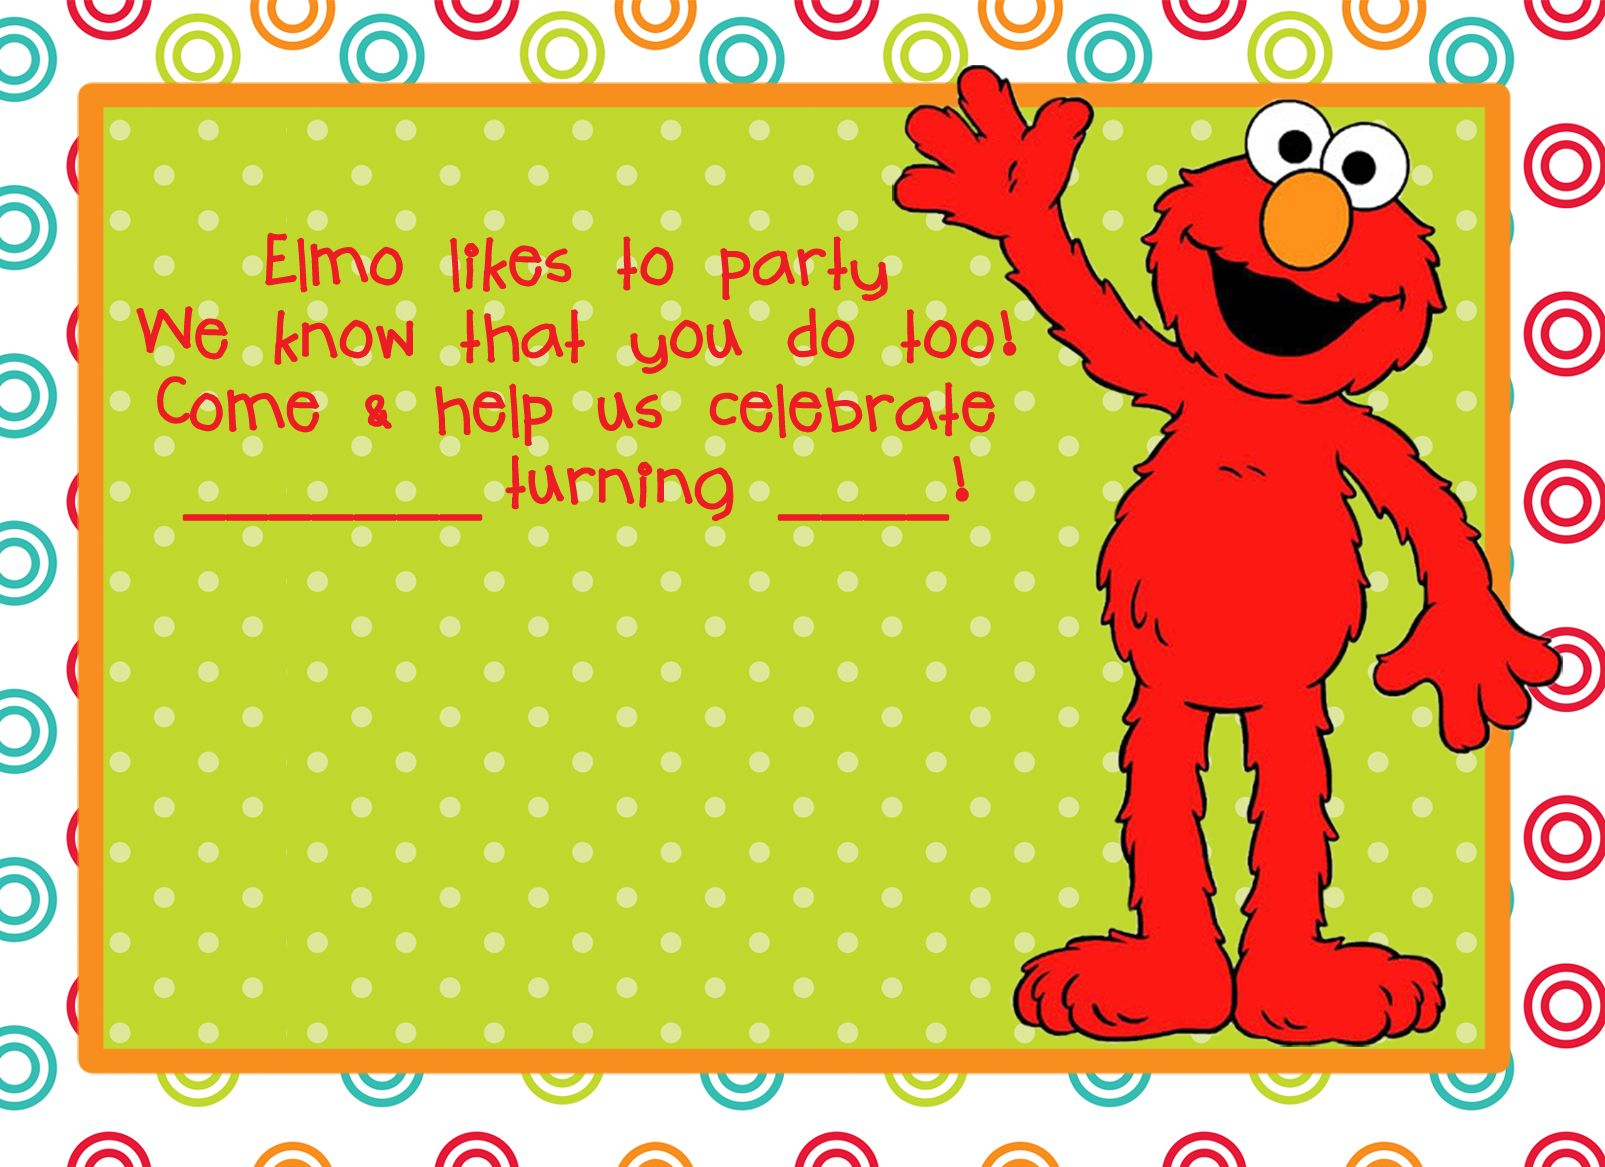 elmo party theme invitation free download changing the words a little - Elmo Birthday Party Invitations